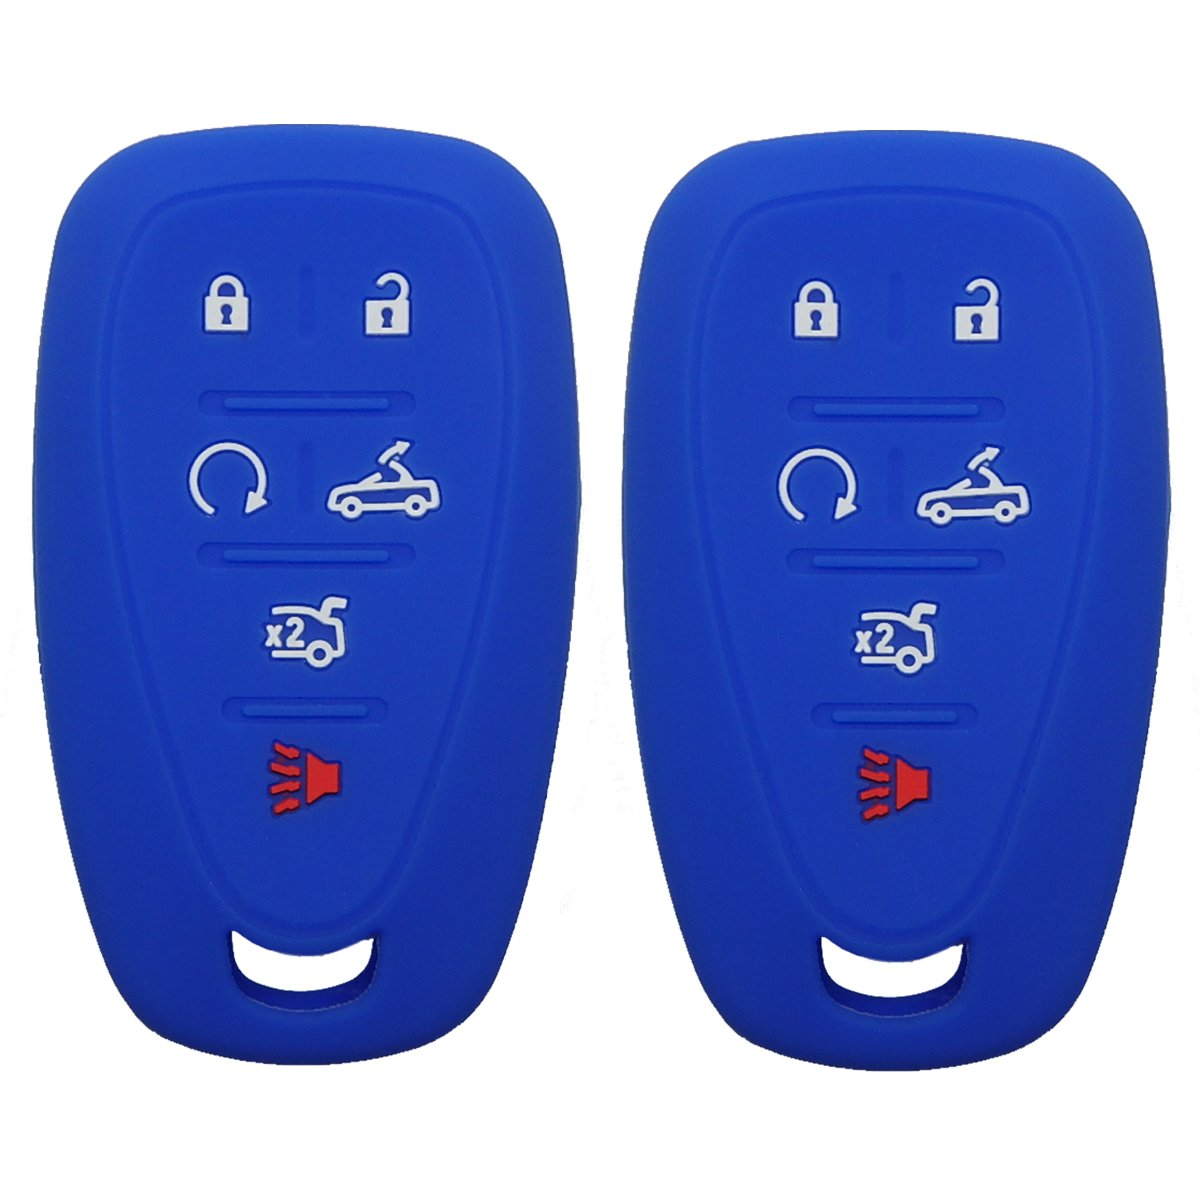 2Pcs Coolbestda Silicone 6Buttons Smart Key Cover Remote Fob Case Keyless Entry Protector for 2016 2017 Chevrolet Camaro HYQ4EA Blue